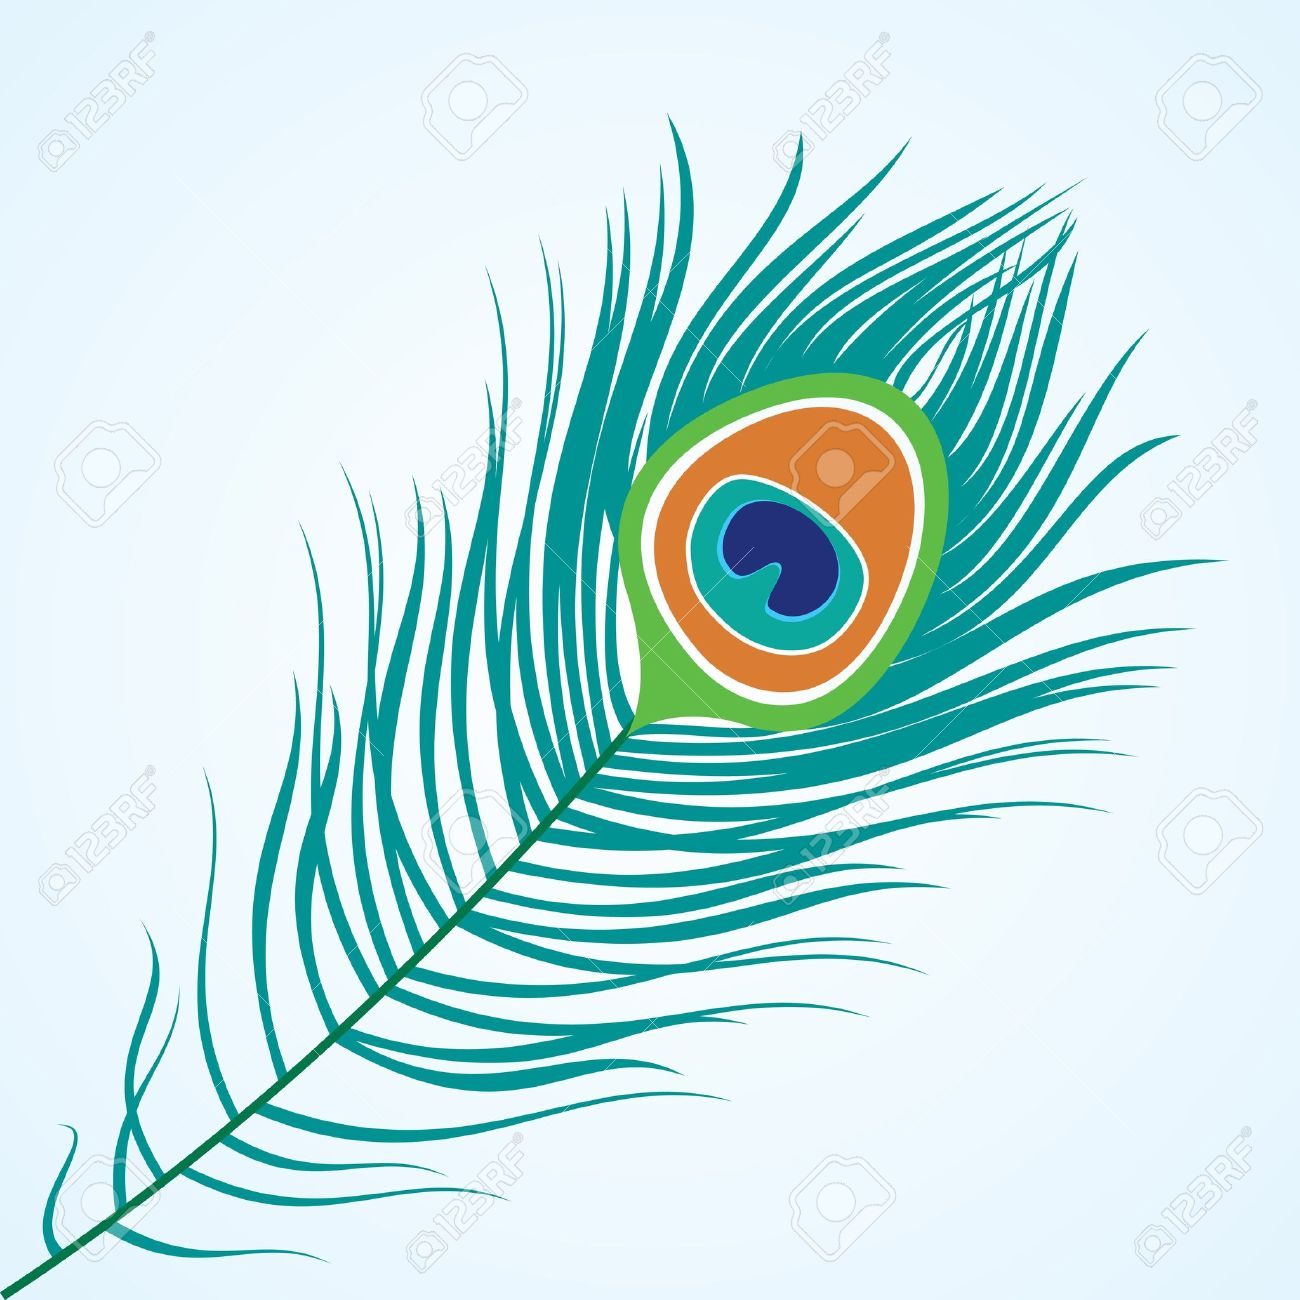 peacock images u0026 stock pictures royalty free peacock photos and